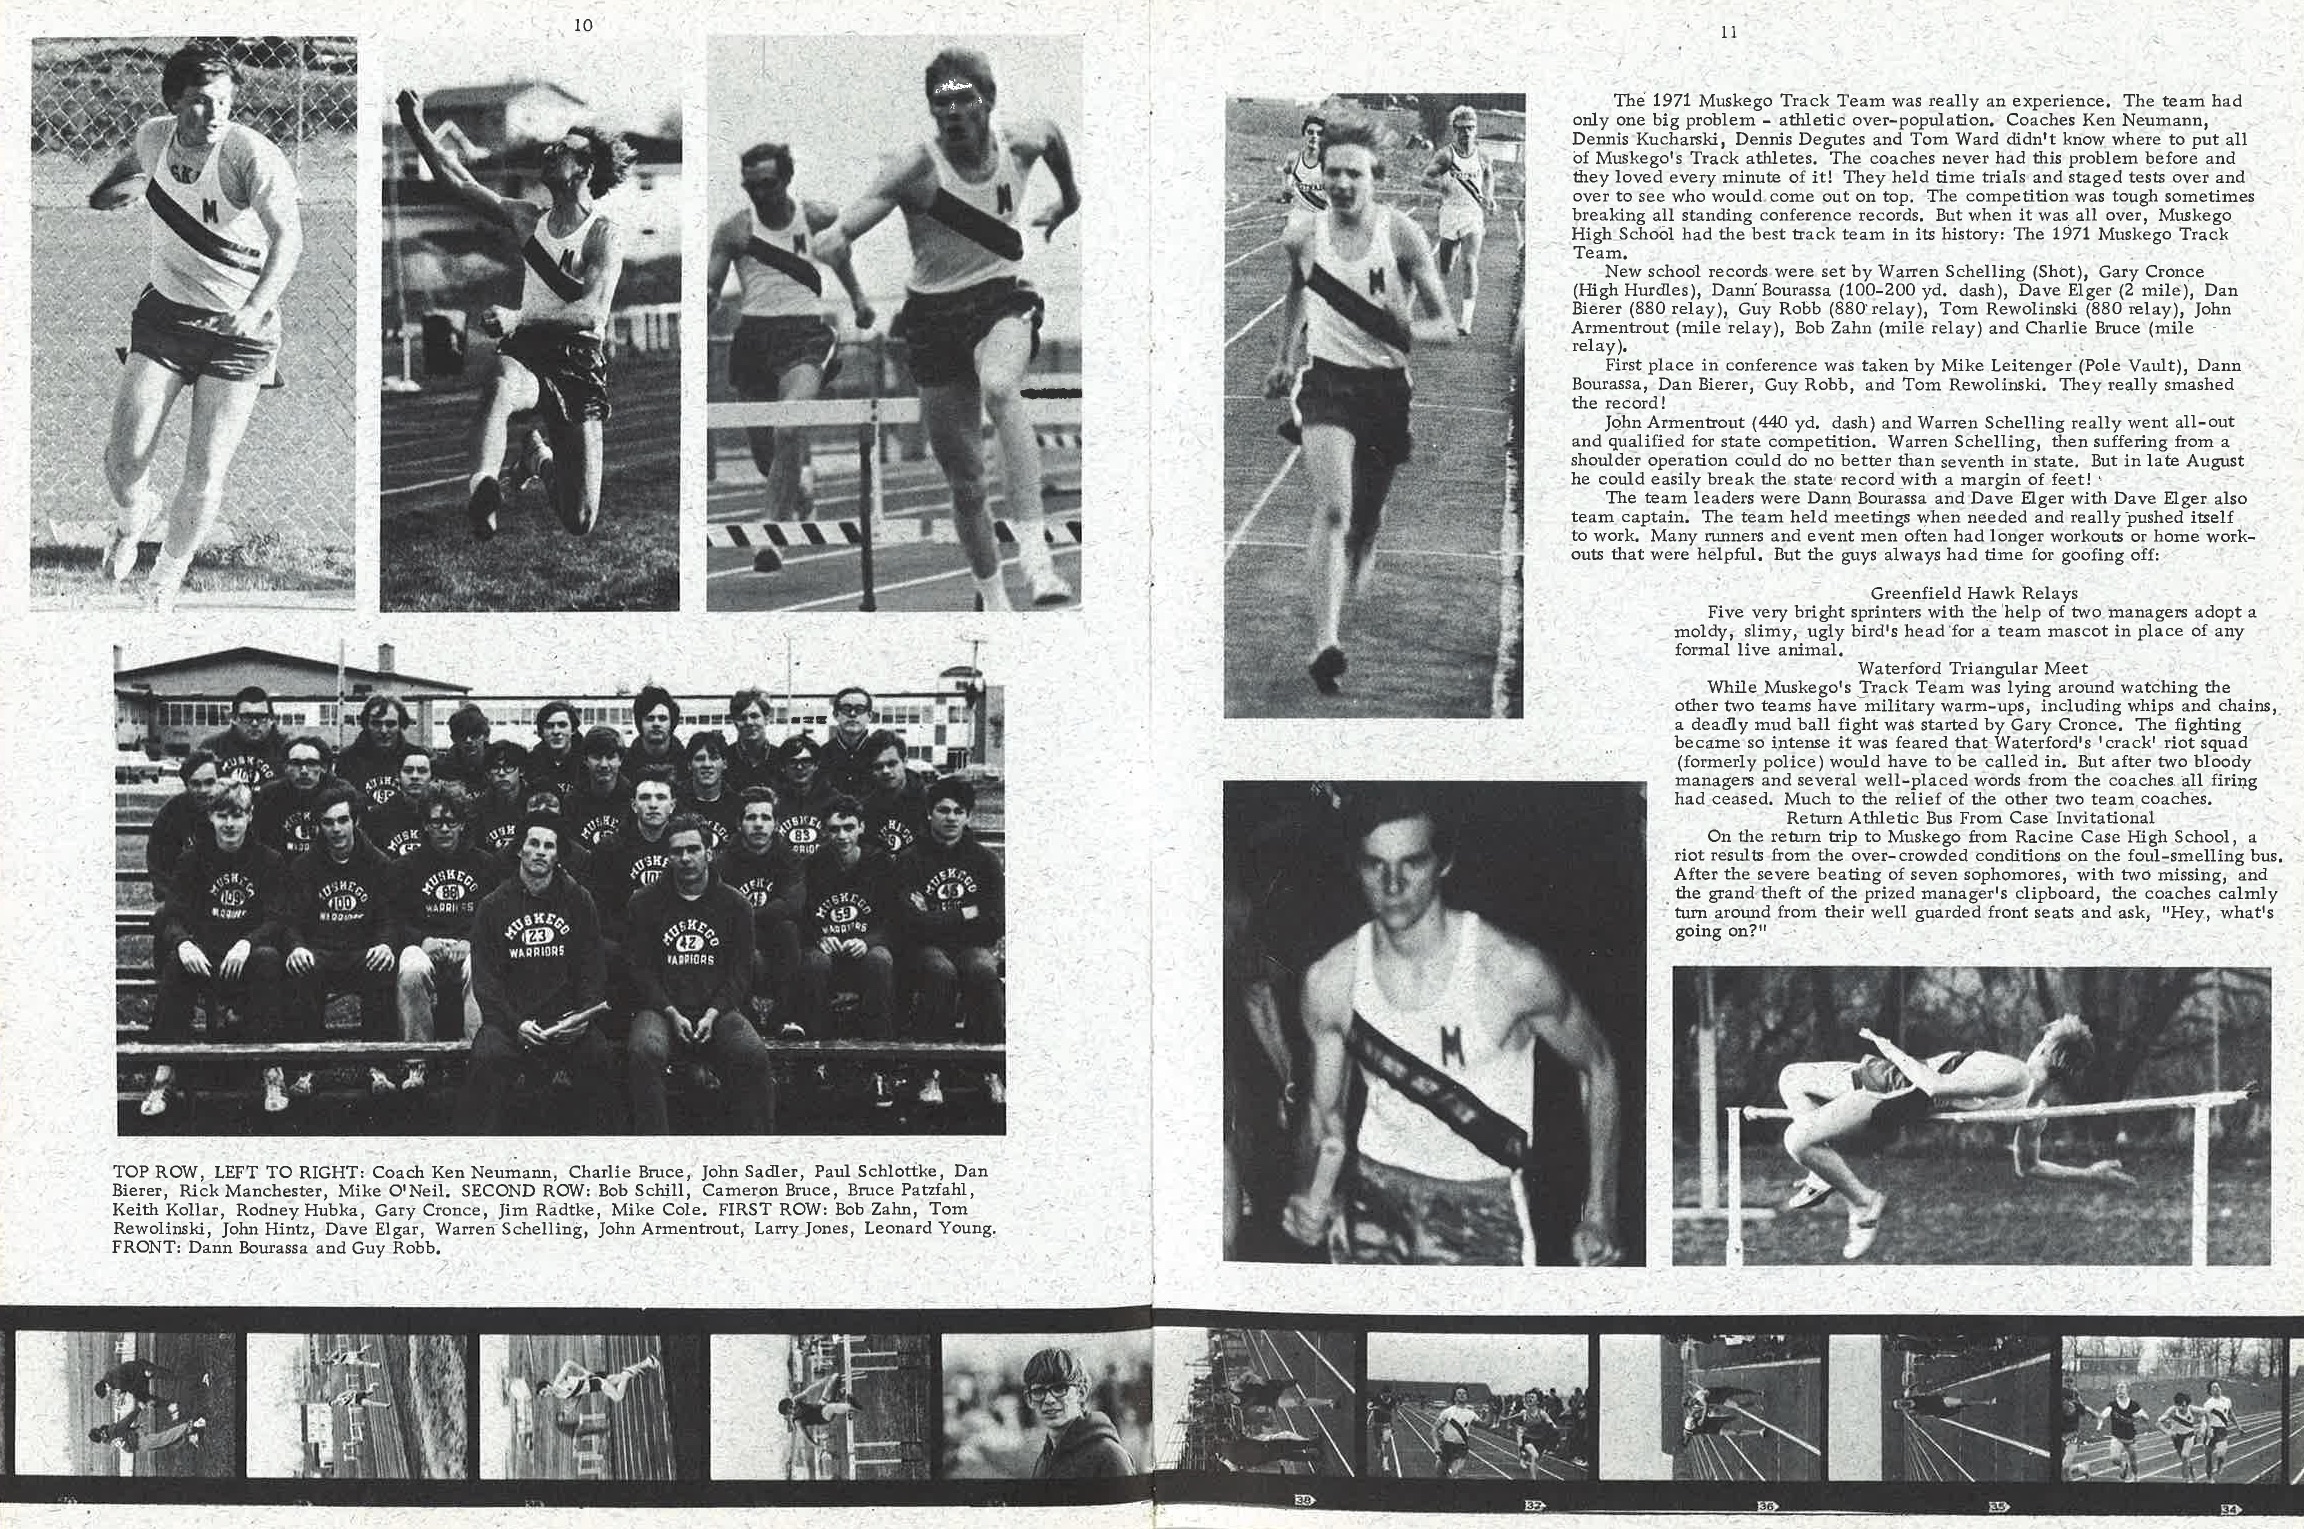 1972_Yearbook_10-11.jpg